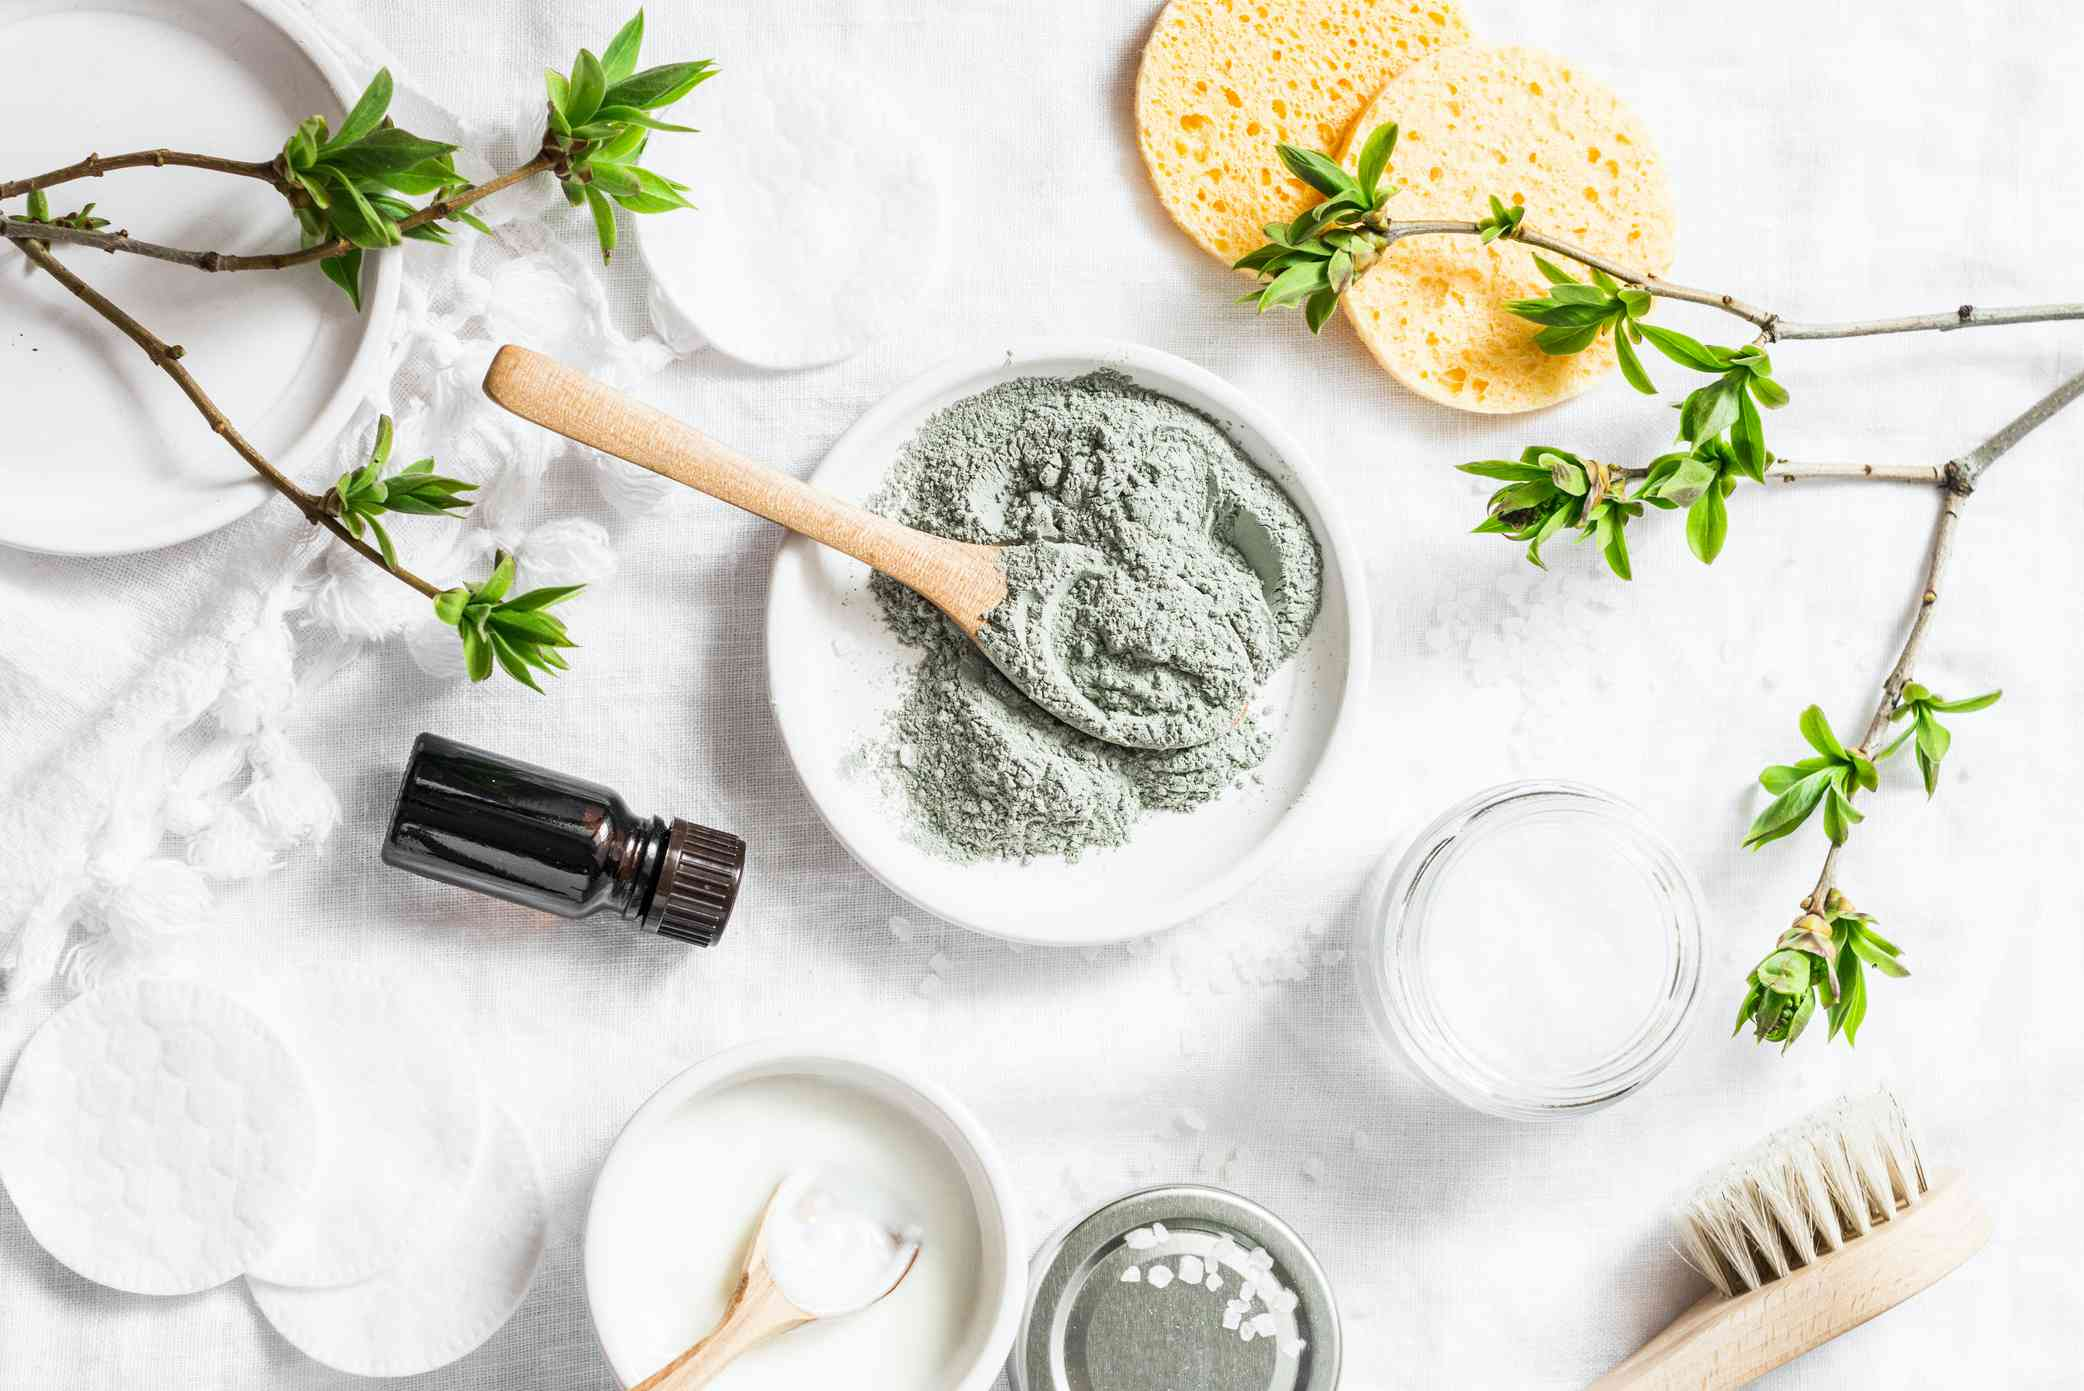 Bowl of bentonite clay surrounded by beauty ingredients and tools